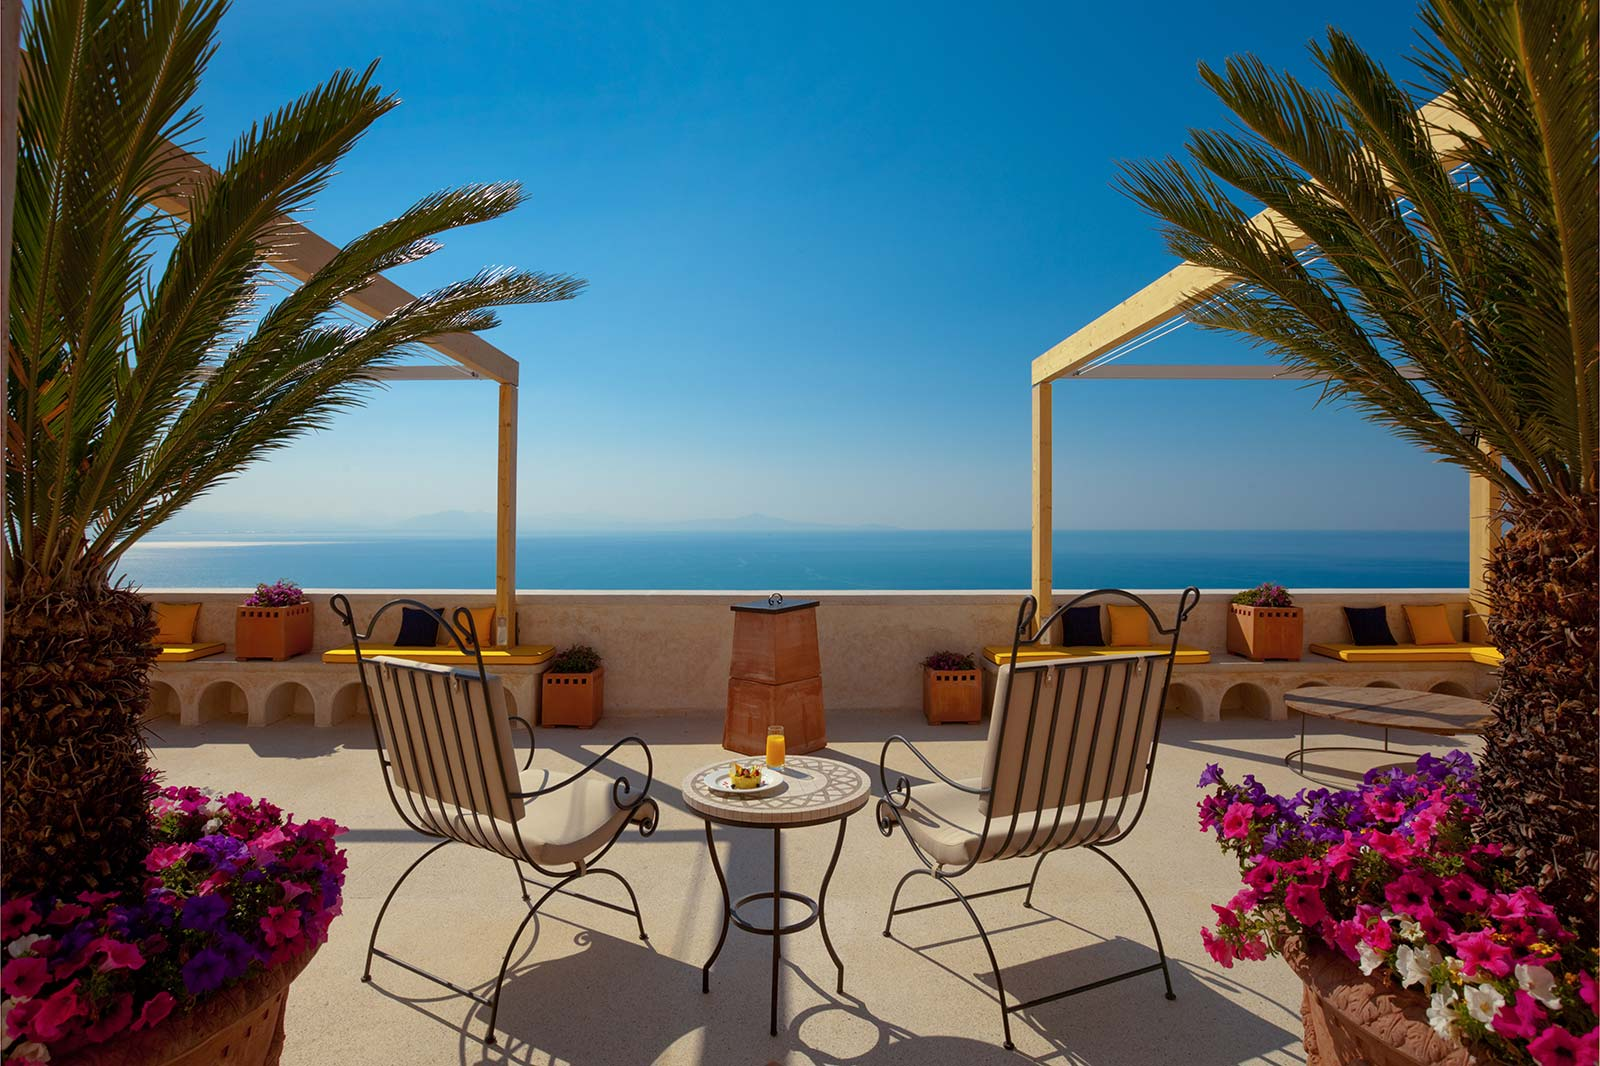 Buy apartments in Rome on the beach